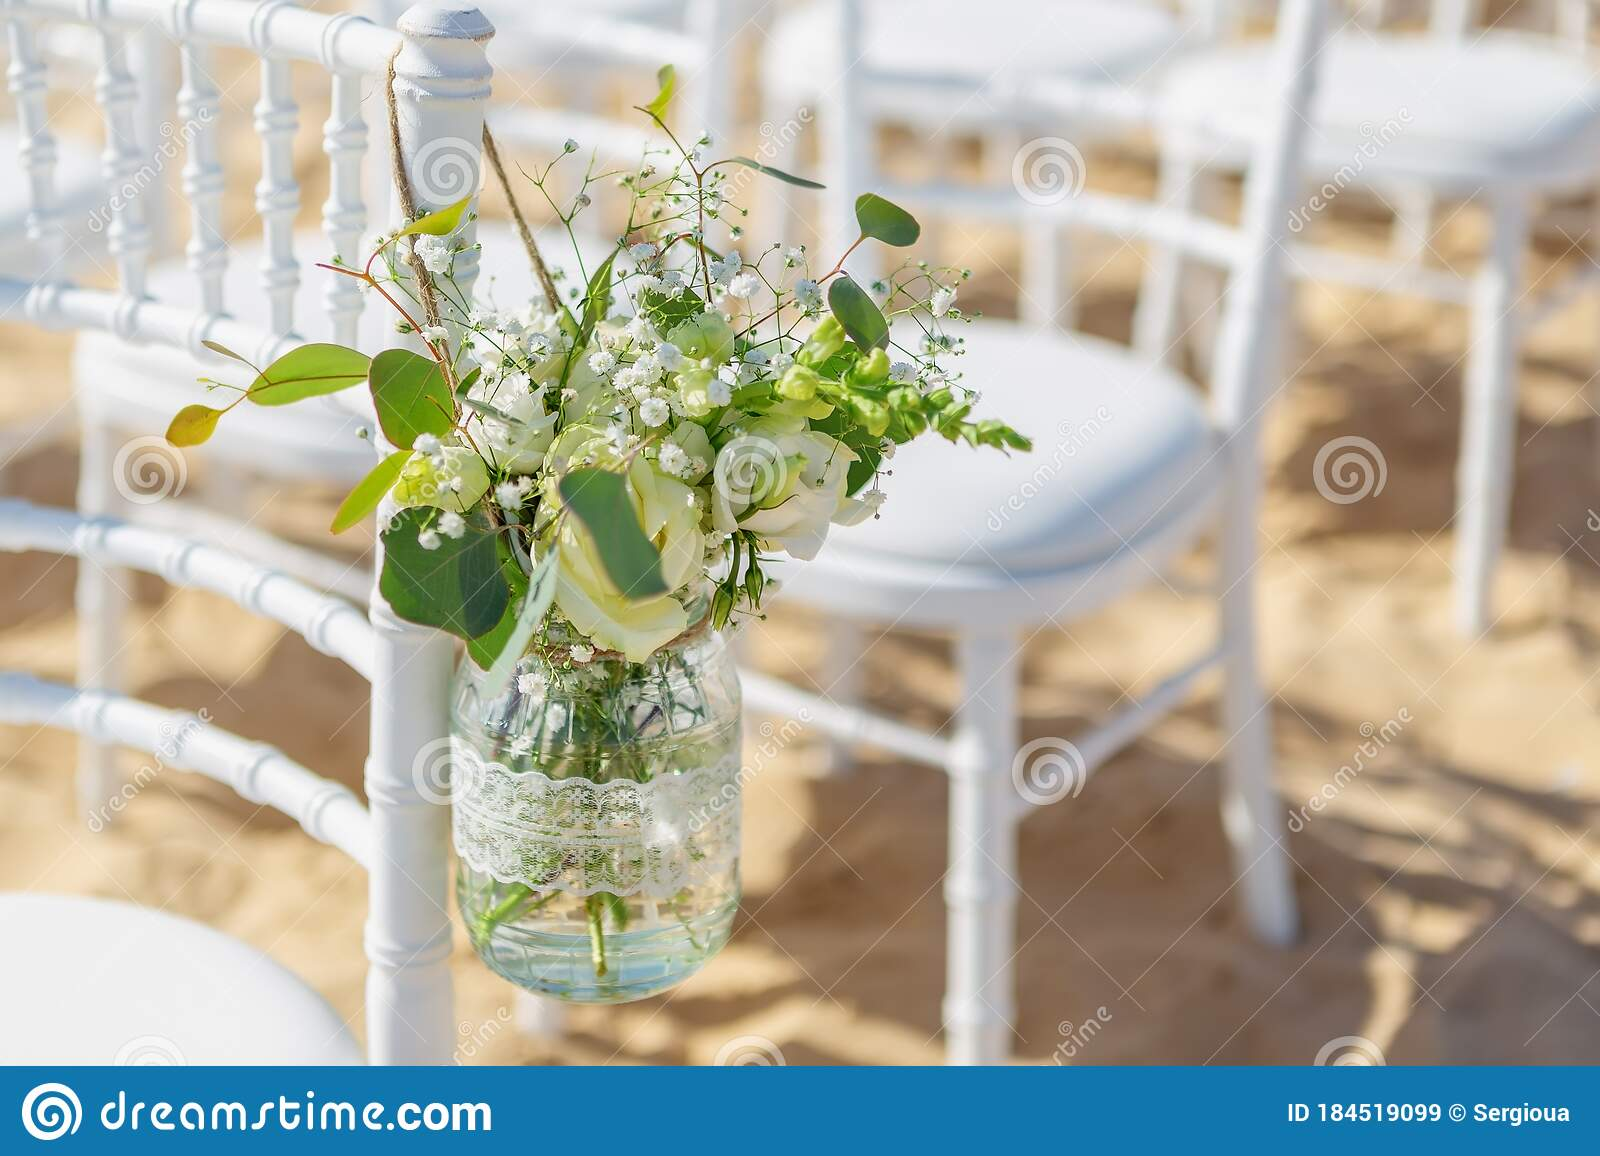 White Chairs At A Beach Wedding Ceremony Decorated With A Hanging Jar Of Flowers On A Sunny Day Close Up Stock Image Image Of Empty Celebrate 184519099